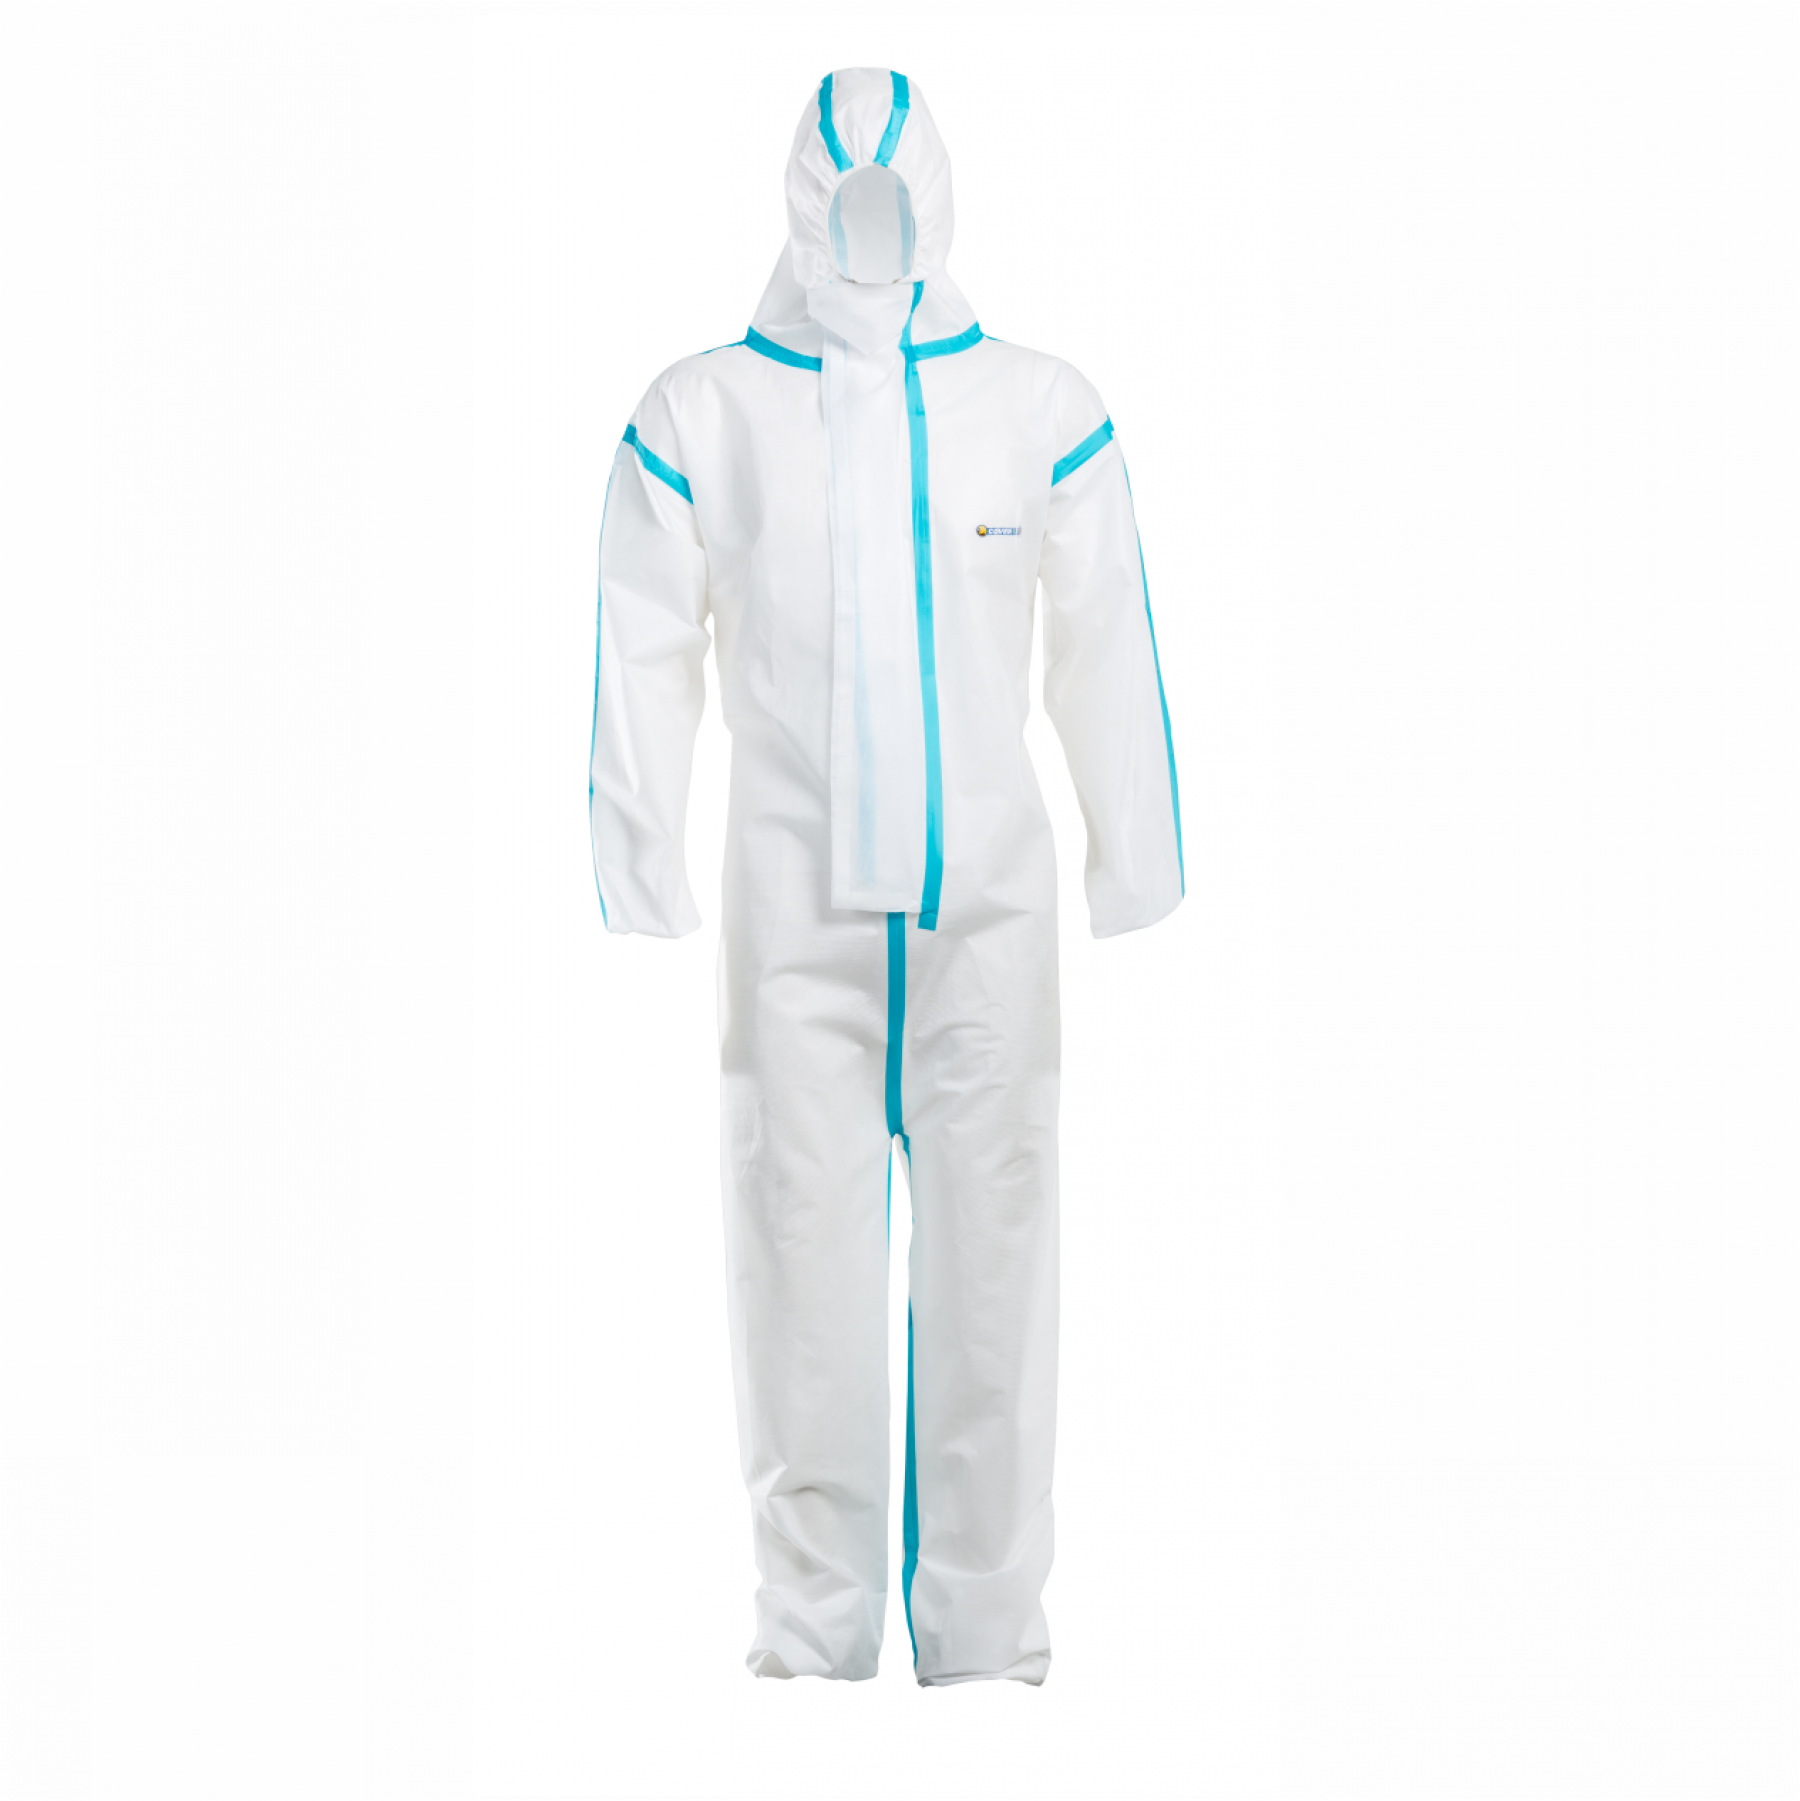 Coverstar Super Seal  White Disposable Suit, Size Xl